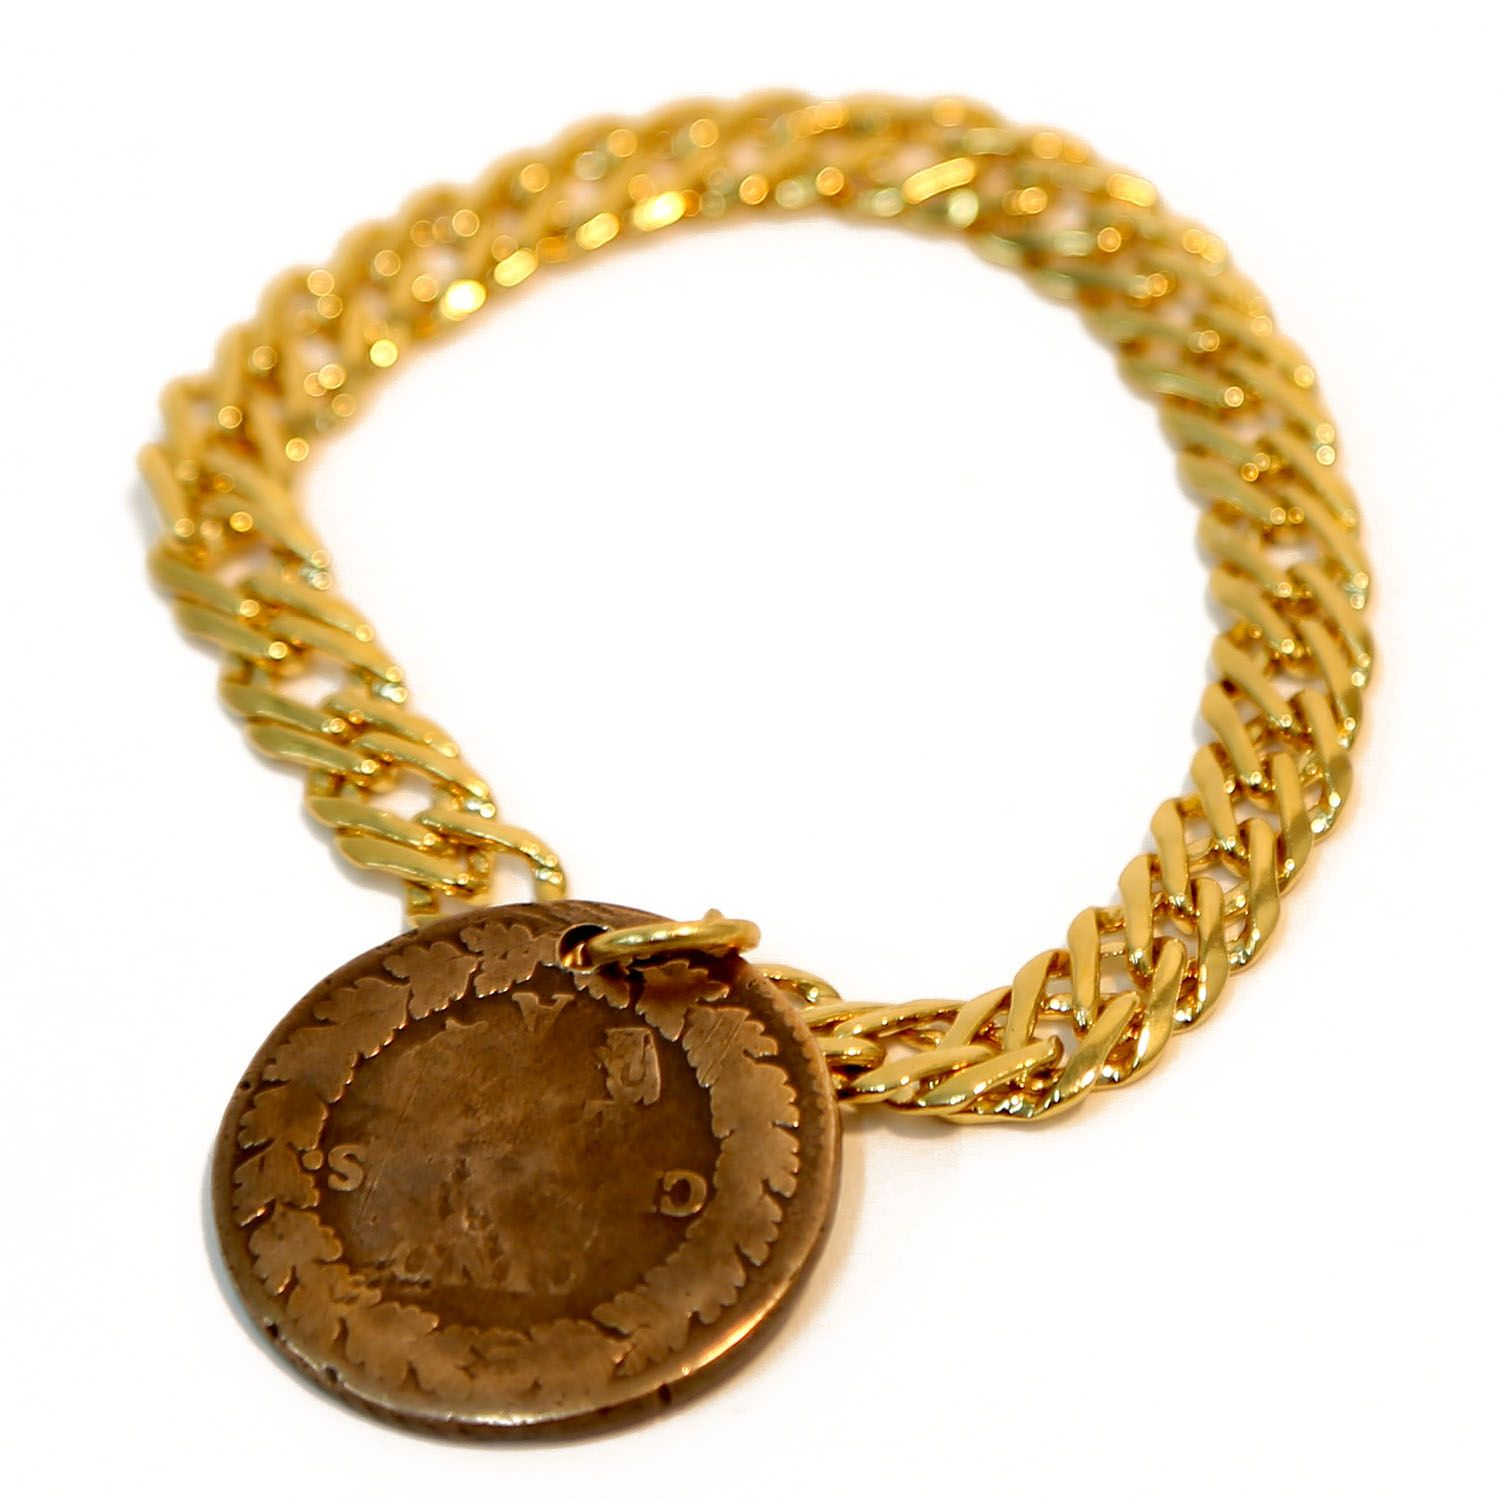 Ax Apple Coin Bracelet 7 Chain Jewelry Pinterest Coins